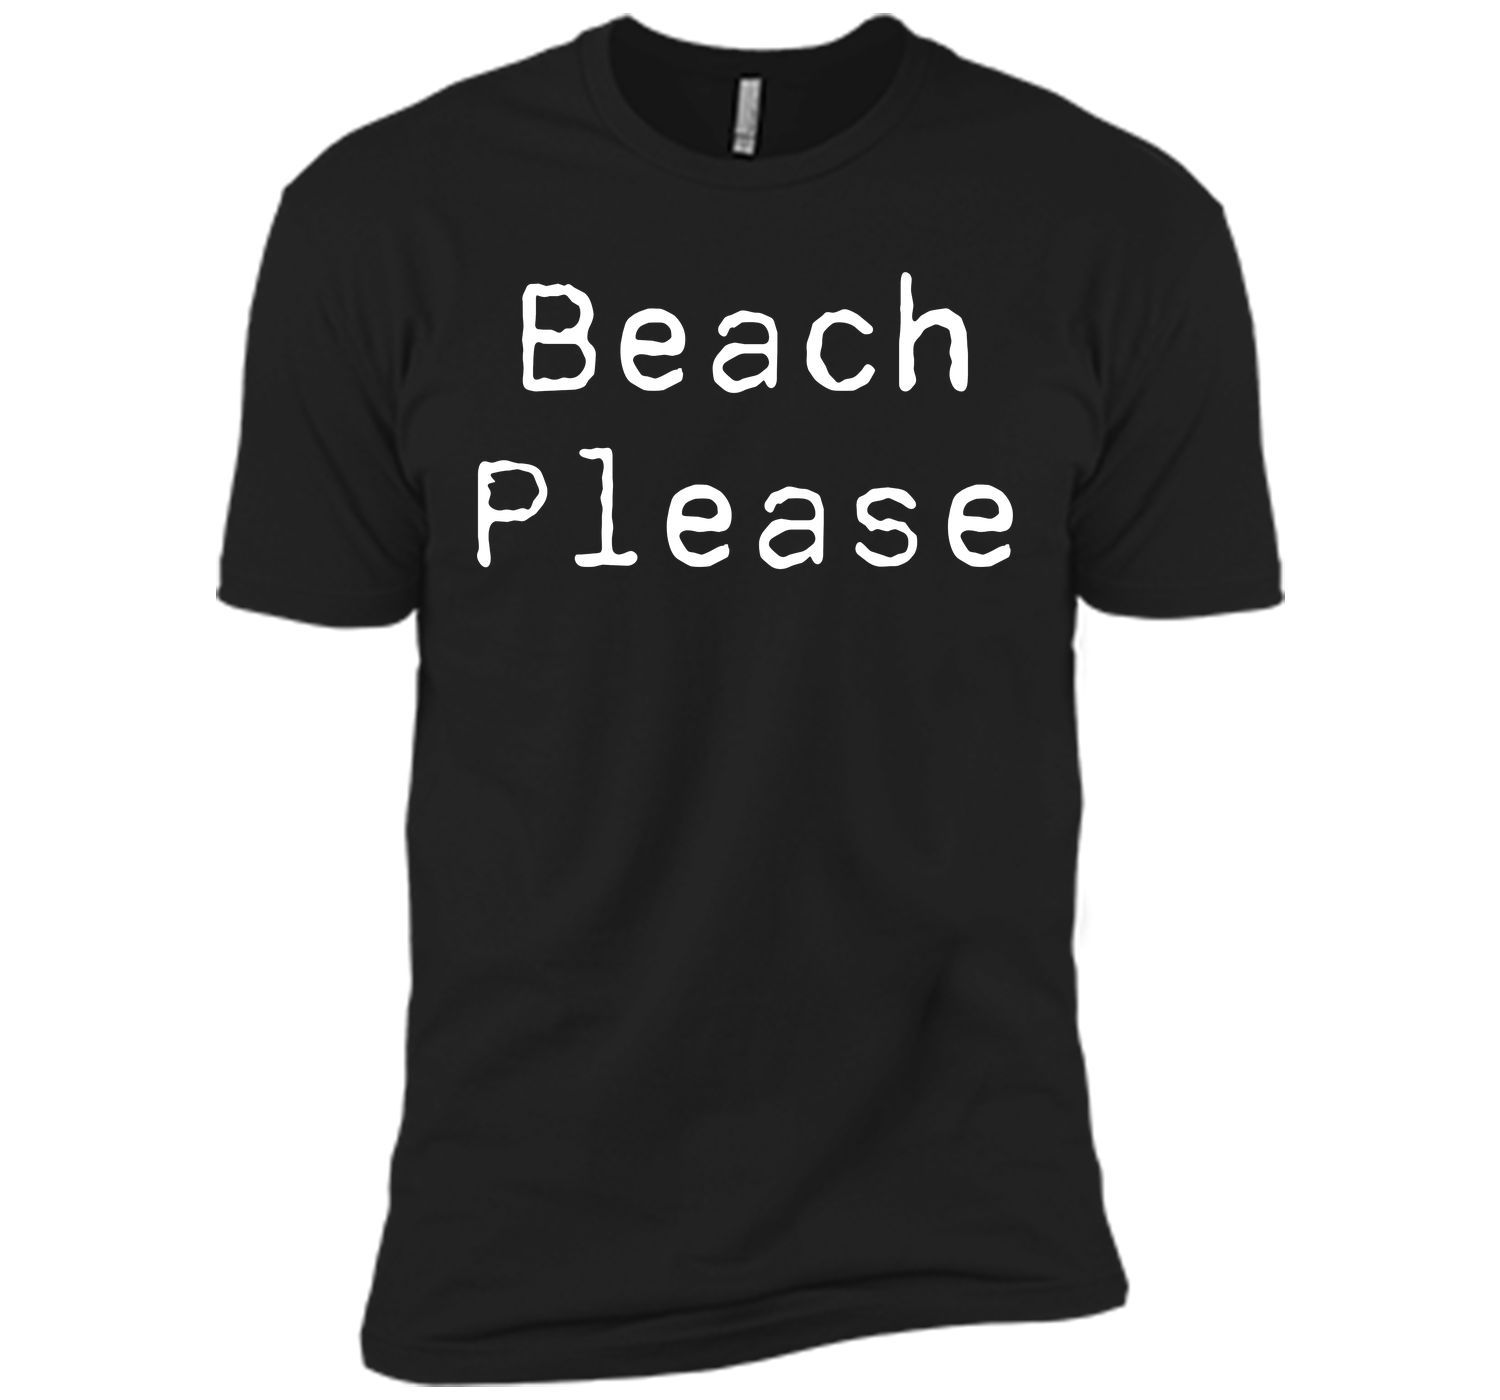 Beach Please Funny Vacation Lover T-shirt T-Shirt